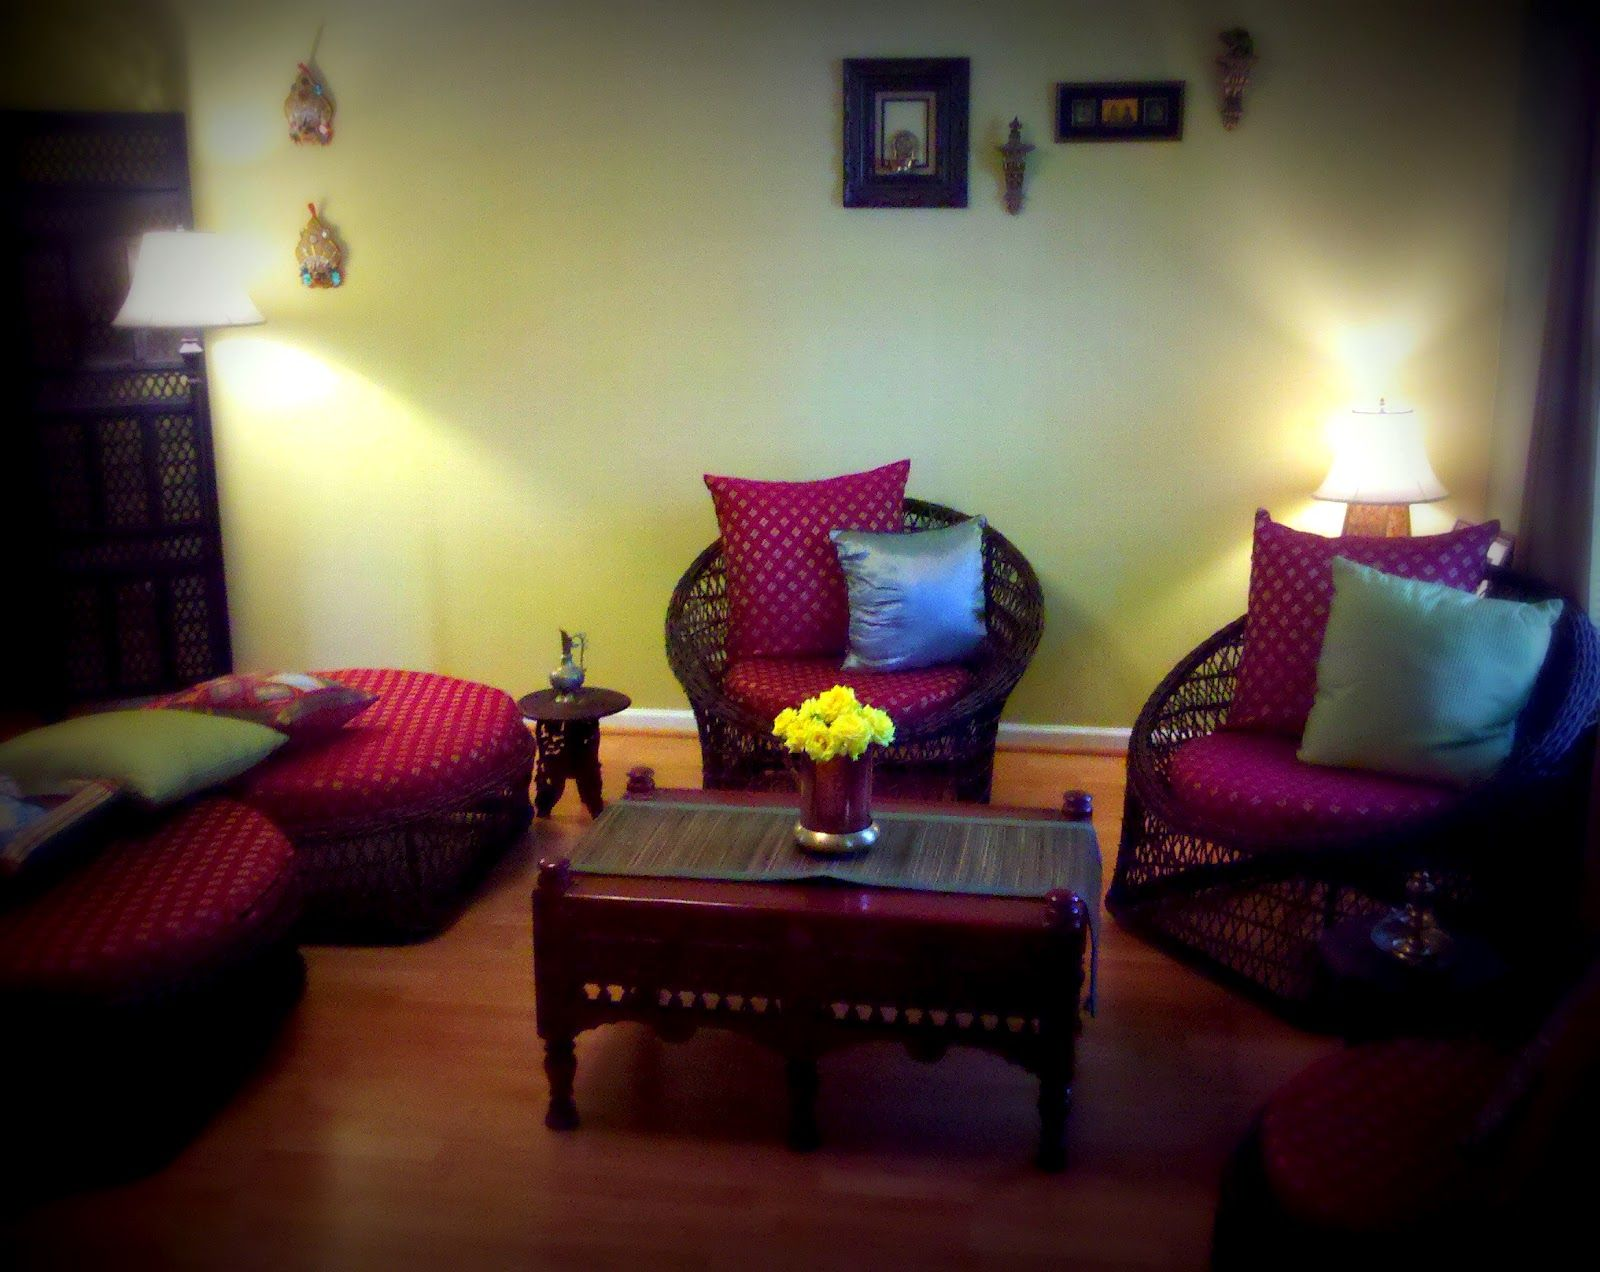 Ethenic Indian Home Interiors Pictures Low Budget